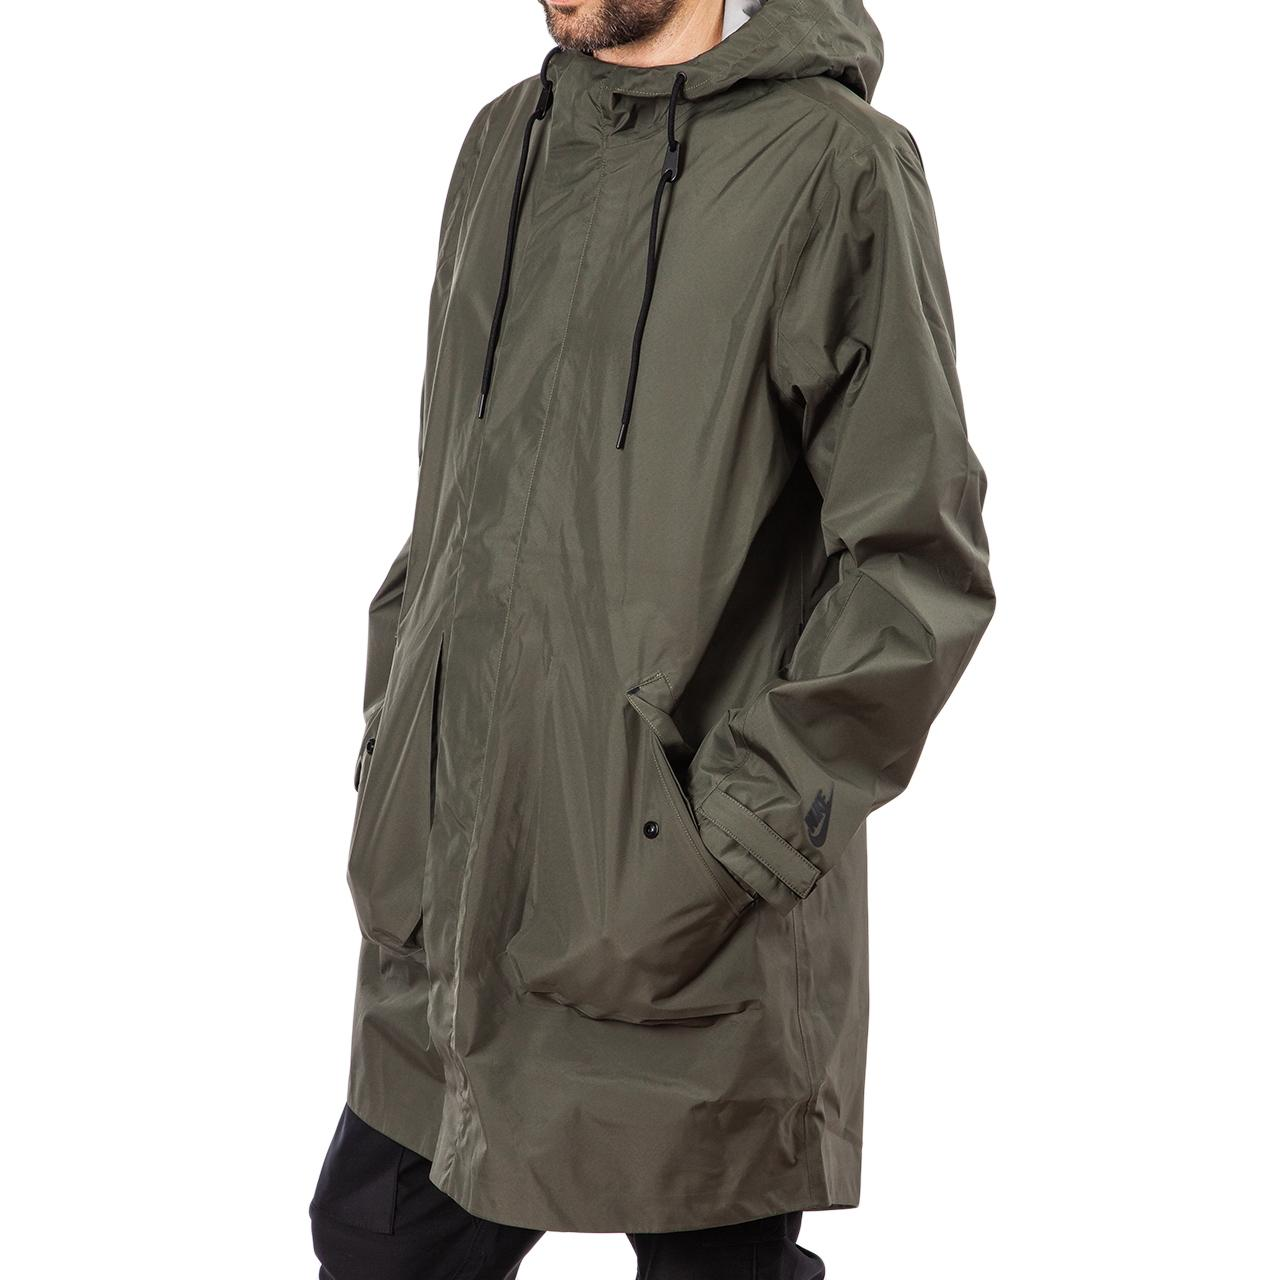 8f79be4a80 Nike - Green Nrg 3 Layer Parka for Men - Lyst. View fullscreen